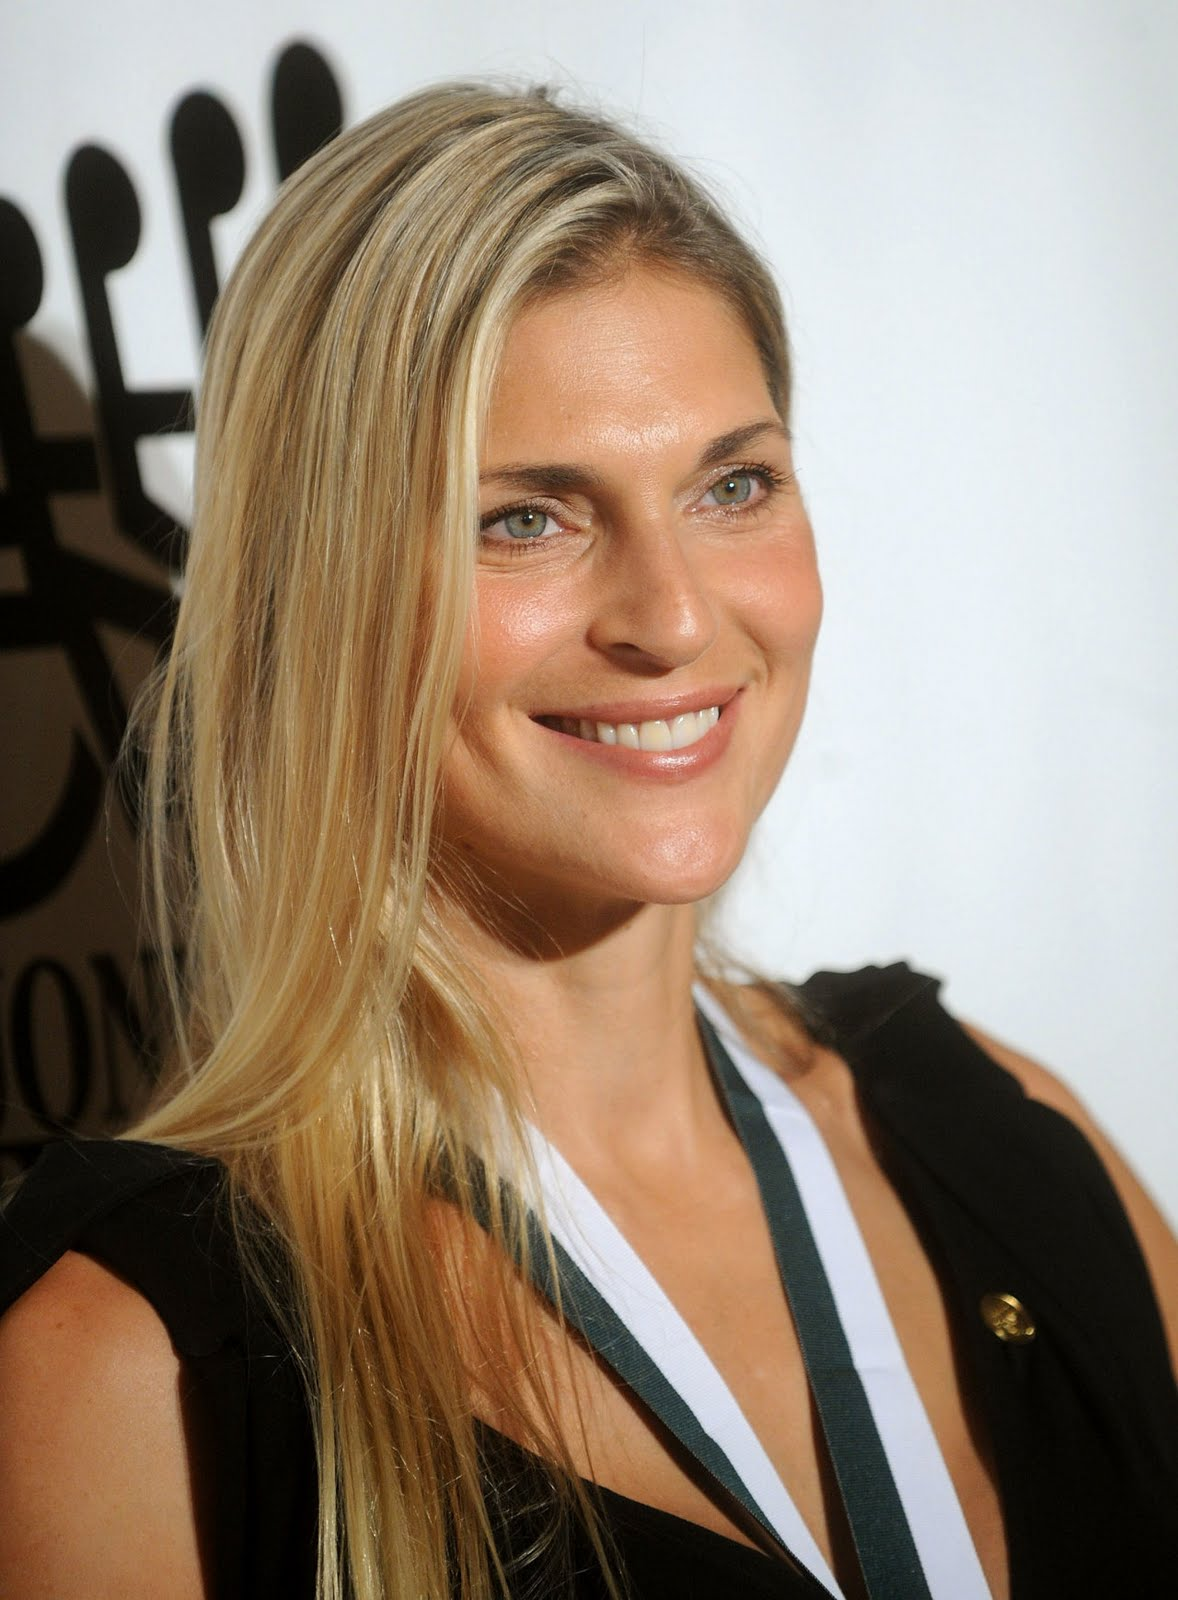 Gabrielle Reece was born on January 6, 1970. She is 6'3